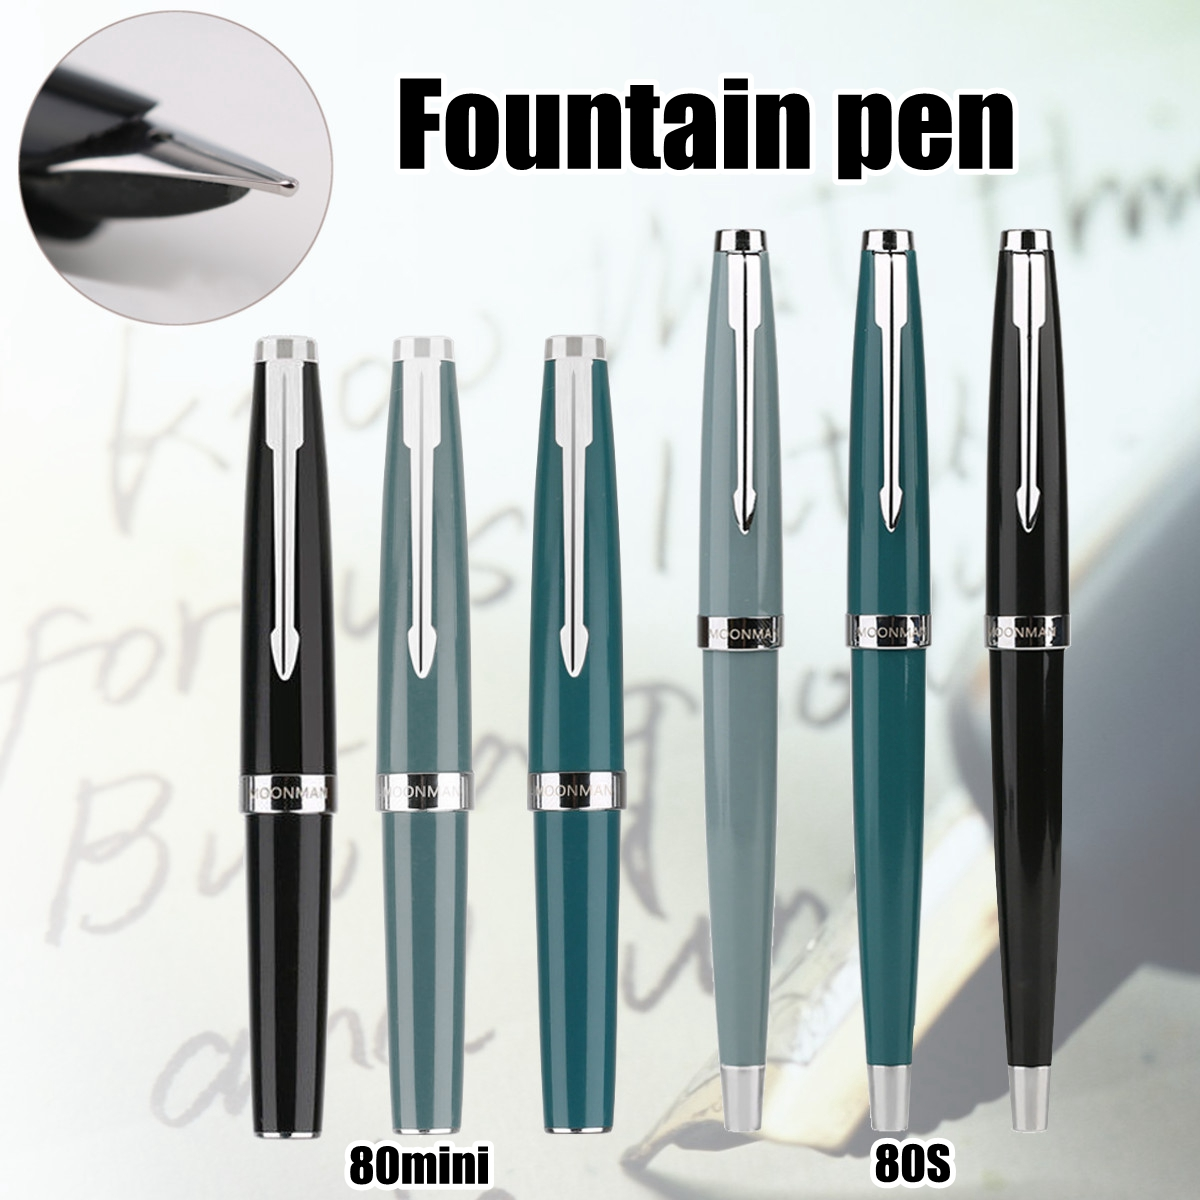 MOONMAN 80s 80 MINI P ocket Fountain Pen Fine Nib Find Classic Series Pen Fountain PenMOONMAN 80s 80 MINI P ocket Fountain Pen Fine Nib Find Classic Series Pen Fountain Pen